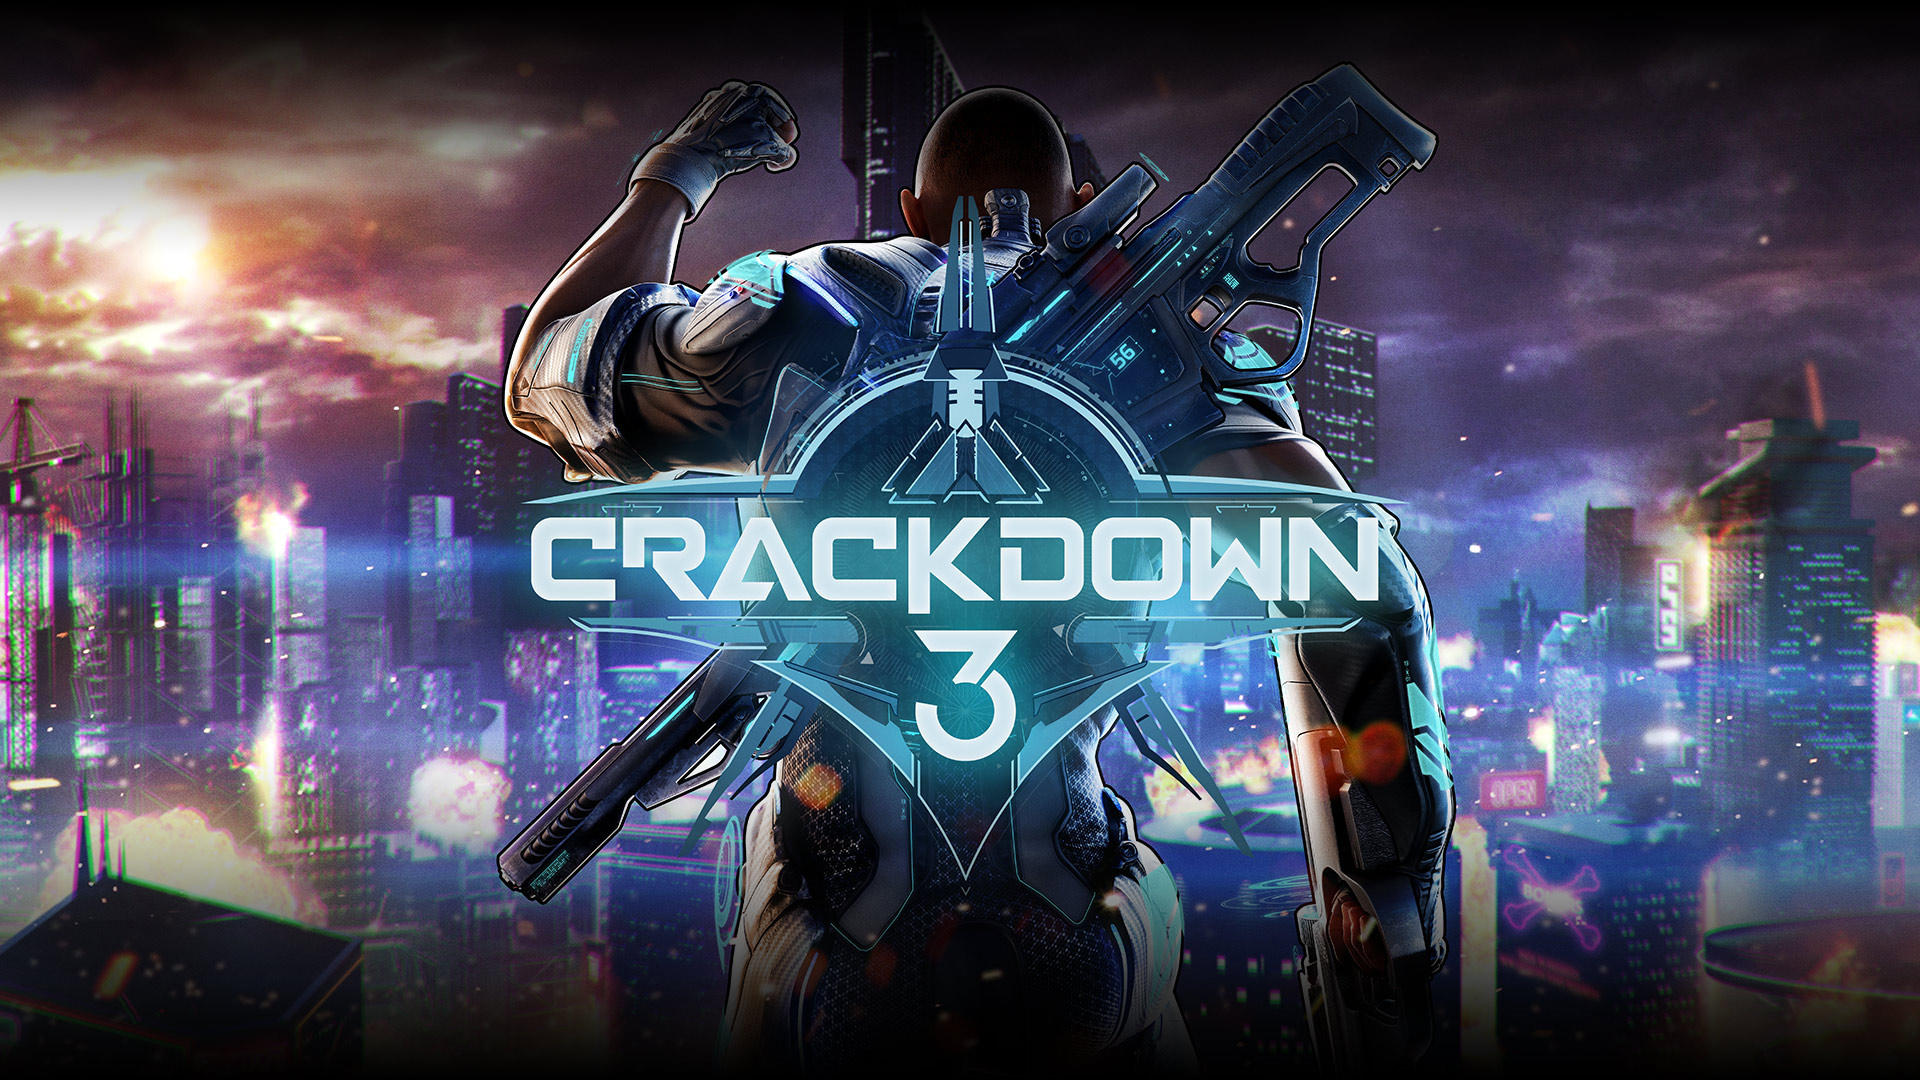 Download Crackdown 2 for free on Xbox One today